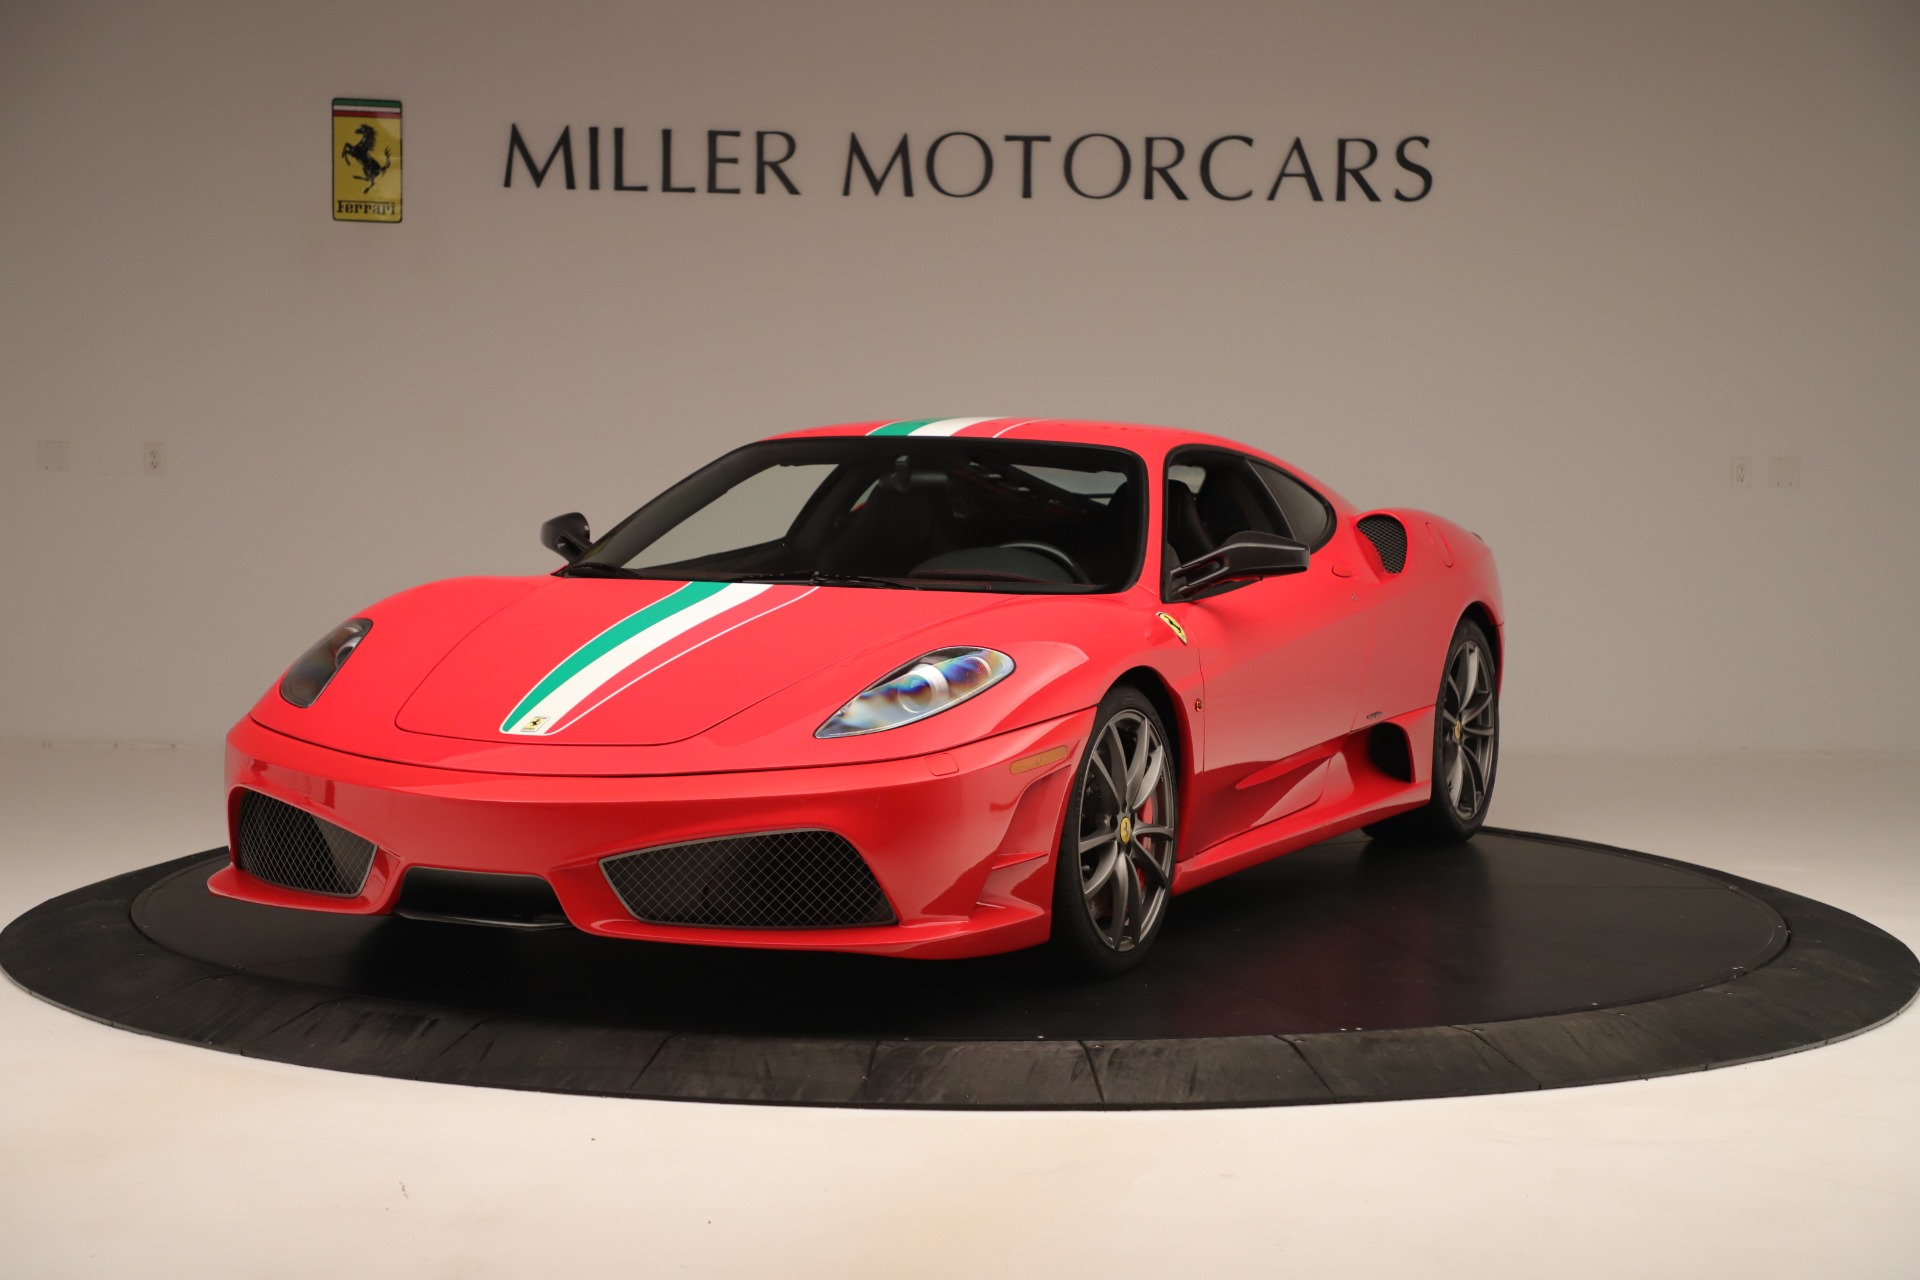 Used 2008 Ferrari F430 Scuderia for sale $229,900 at Alfa Romeo of Westport in Westport CT 06880 1